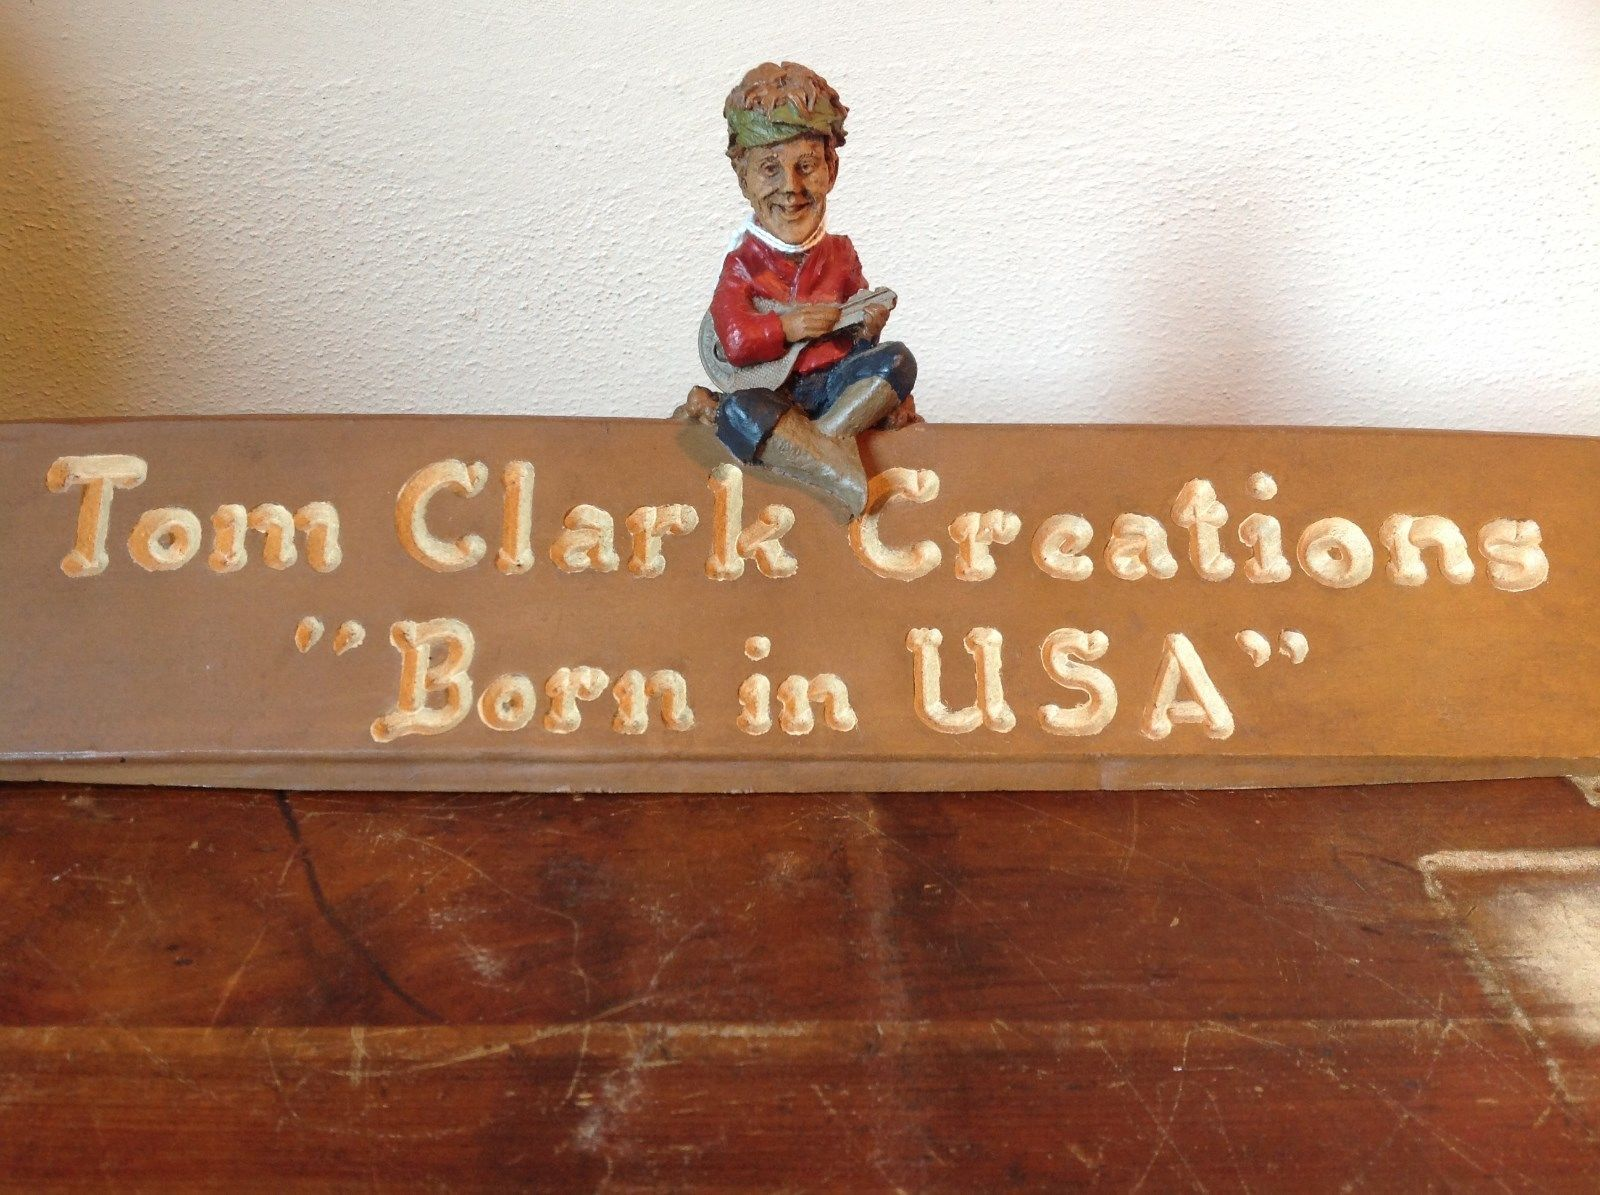 Tom Clarks Creations Born in USA Gnome Playing Lute Figurine